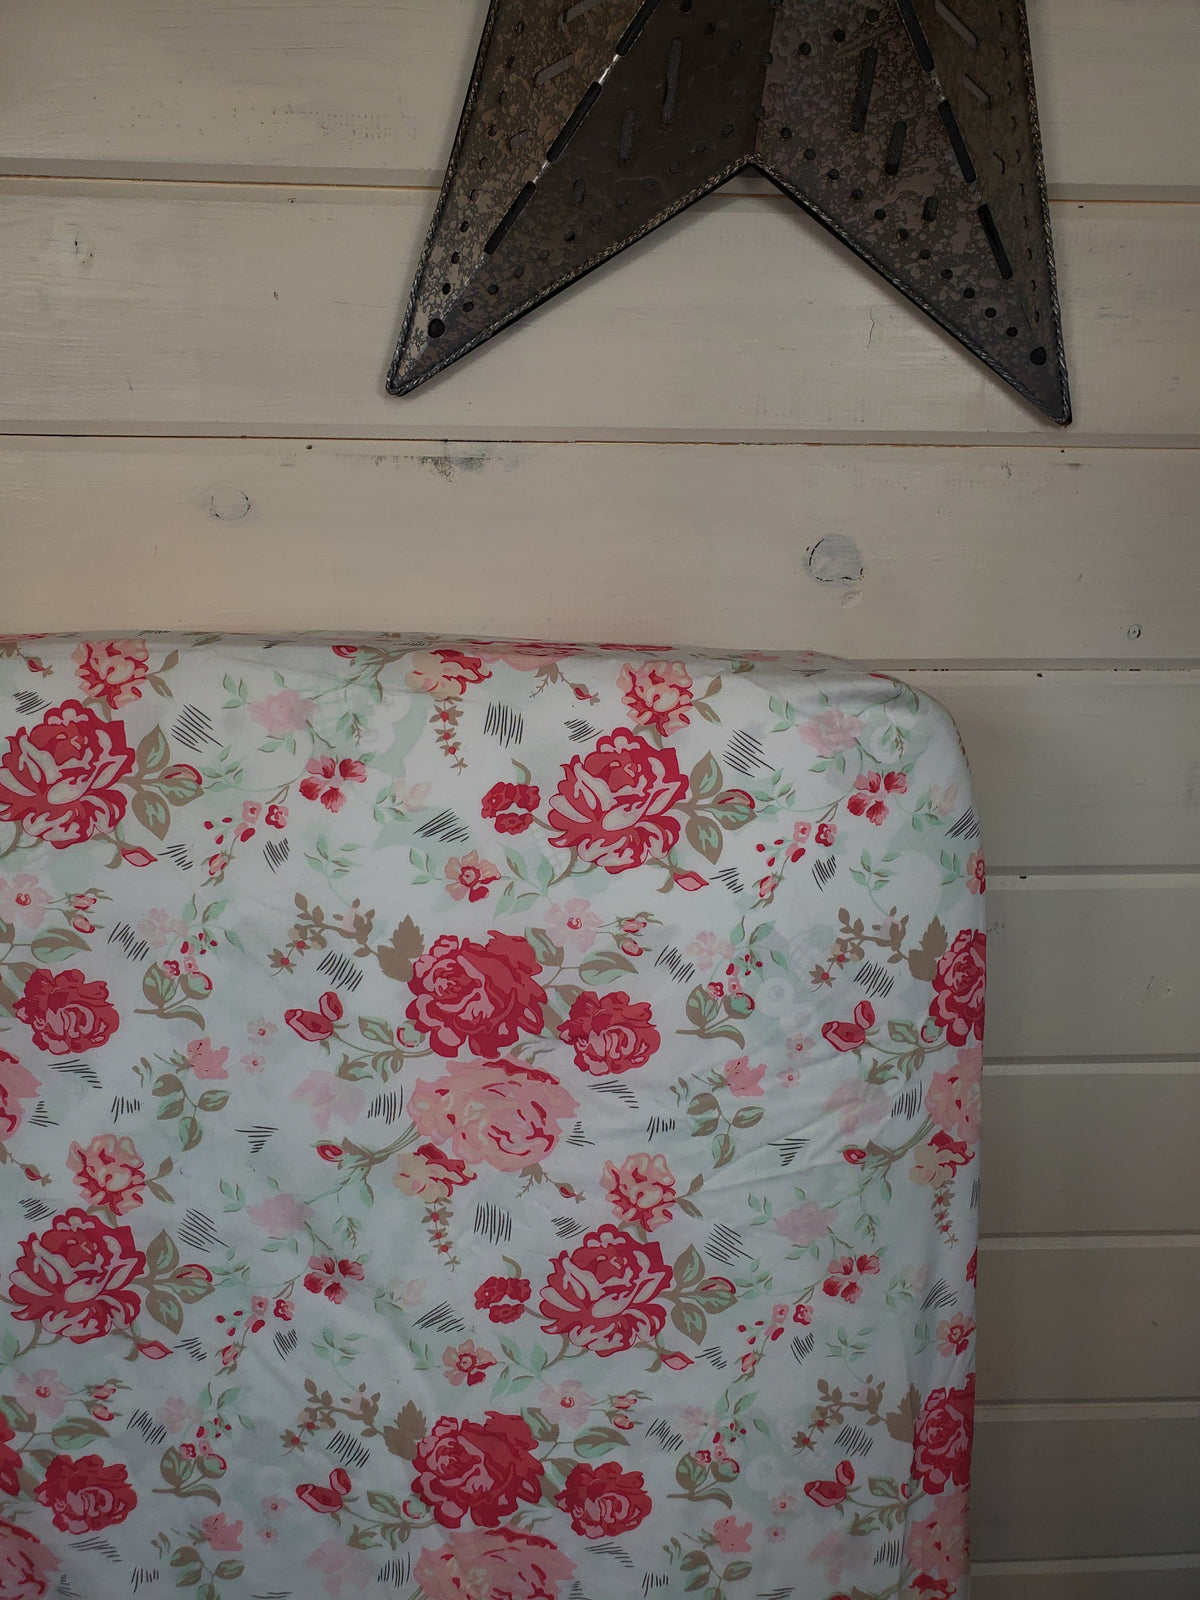 Fitted Sheet - Floral in Romantic Roses : All Bed Sizes